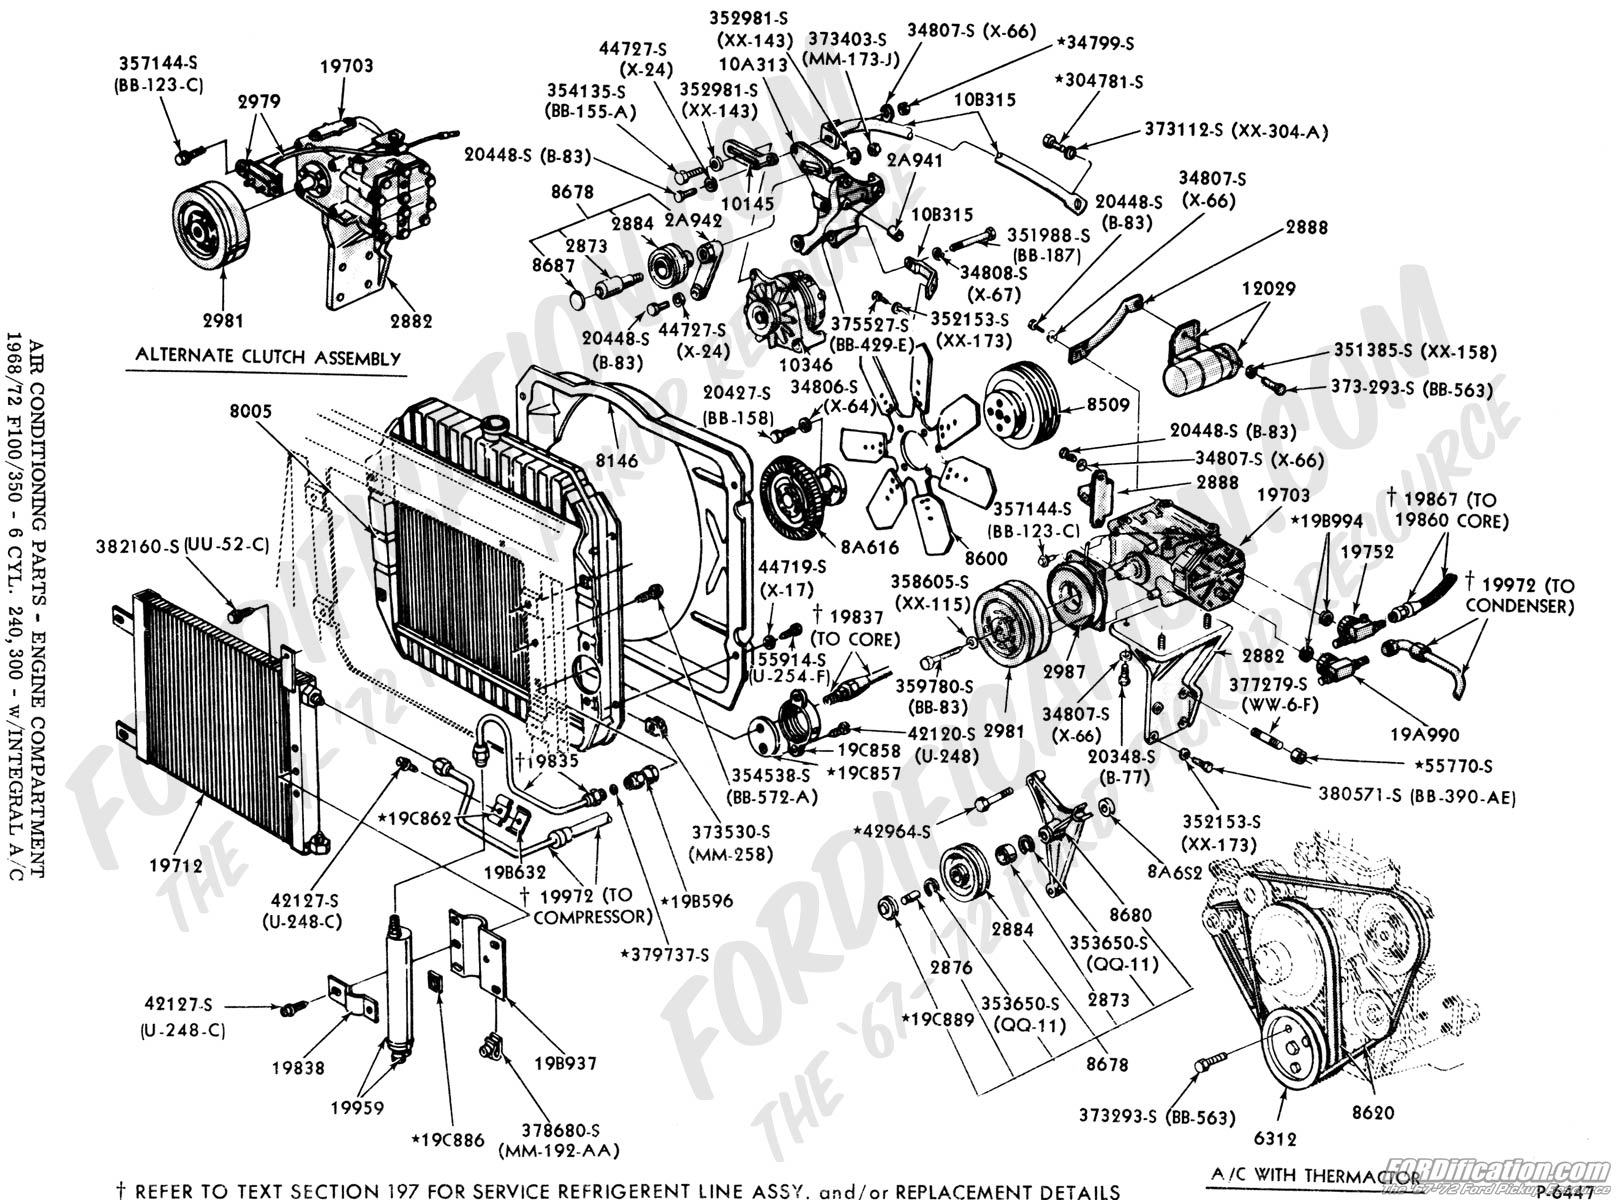 hight resolution of f350 ac diagram wiring diagram expert 2006 f350 ac system diagram f350 ac diagram